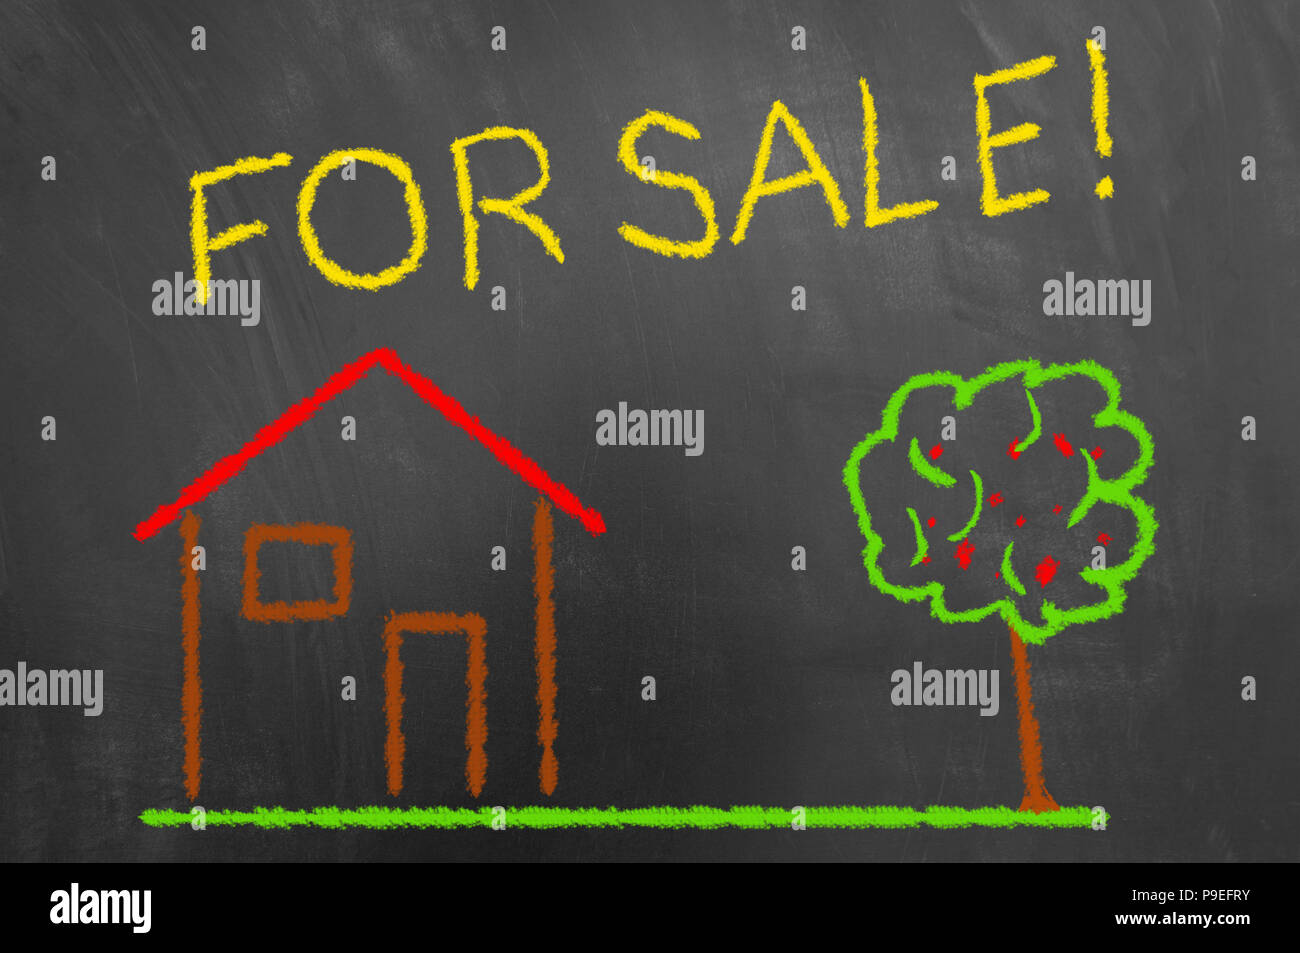 House for sale colorful chalk drawing on chalkboard or blackboard as real estate cozy new home living residence concept - Stock Image